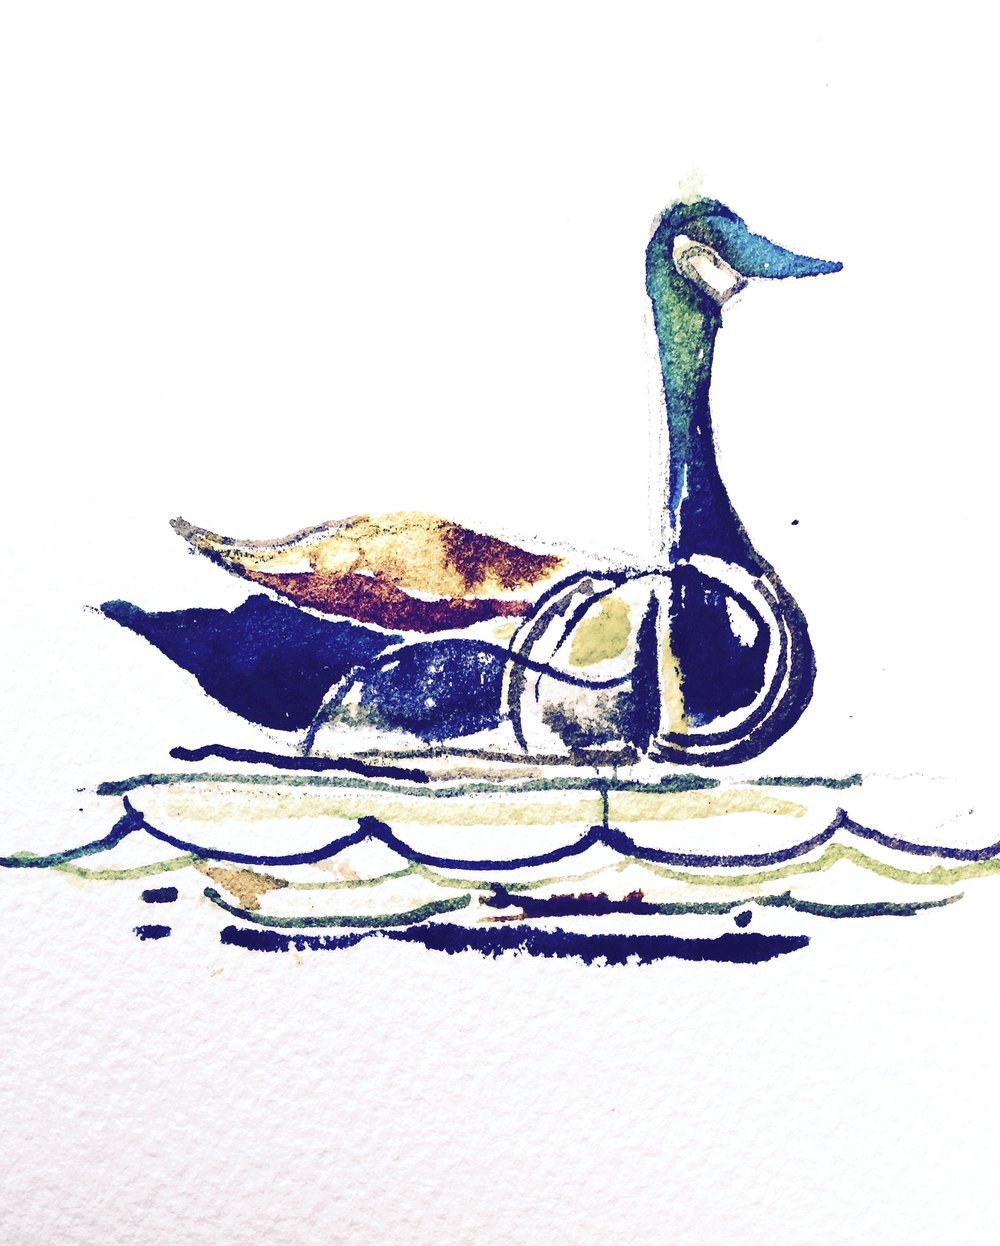 Royal Goose, 2016